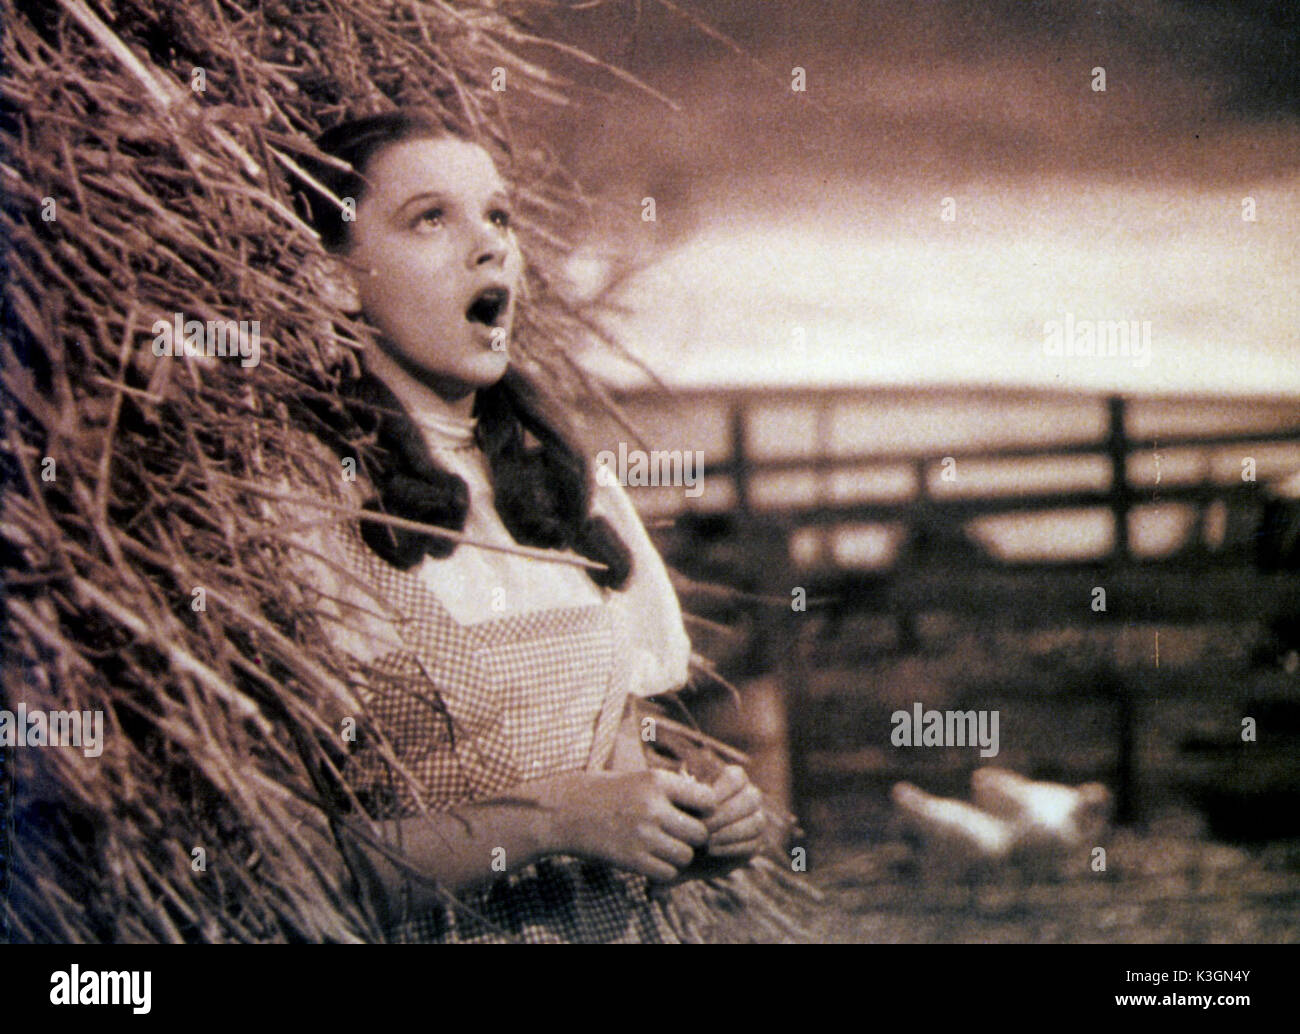 The Wizard Of Oz Us 1939 Judy Garland Singing Somewhere Over The